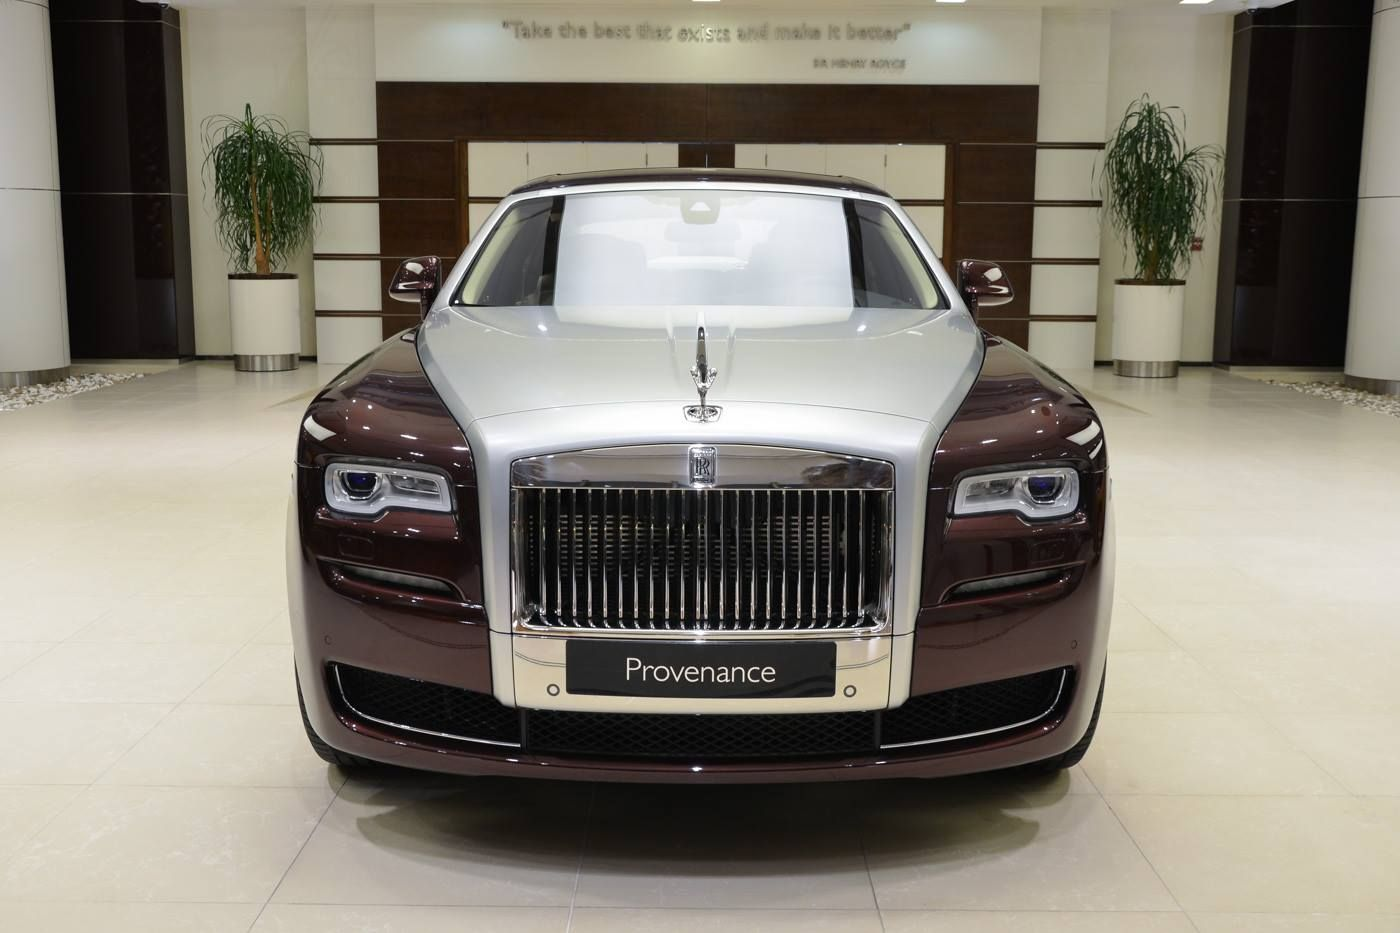 New Rolls Royce >> Used Madeira Red Rolls Royce Ghost Looks As Good As New Luxury